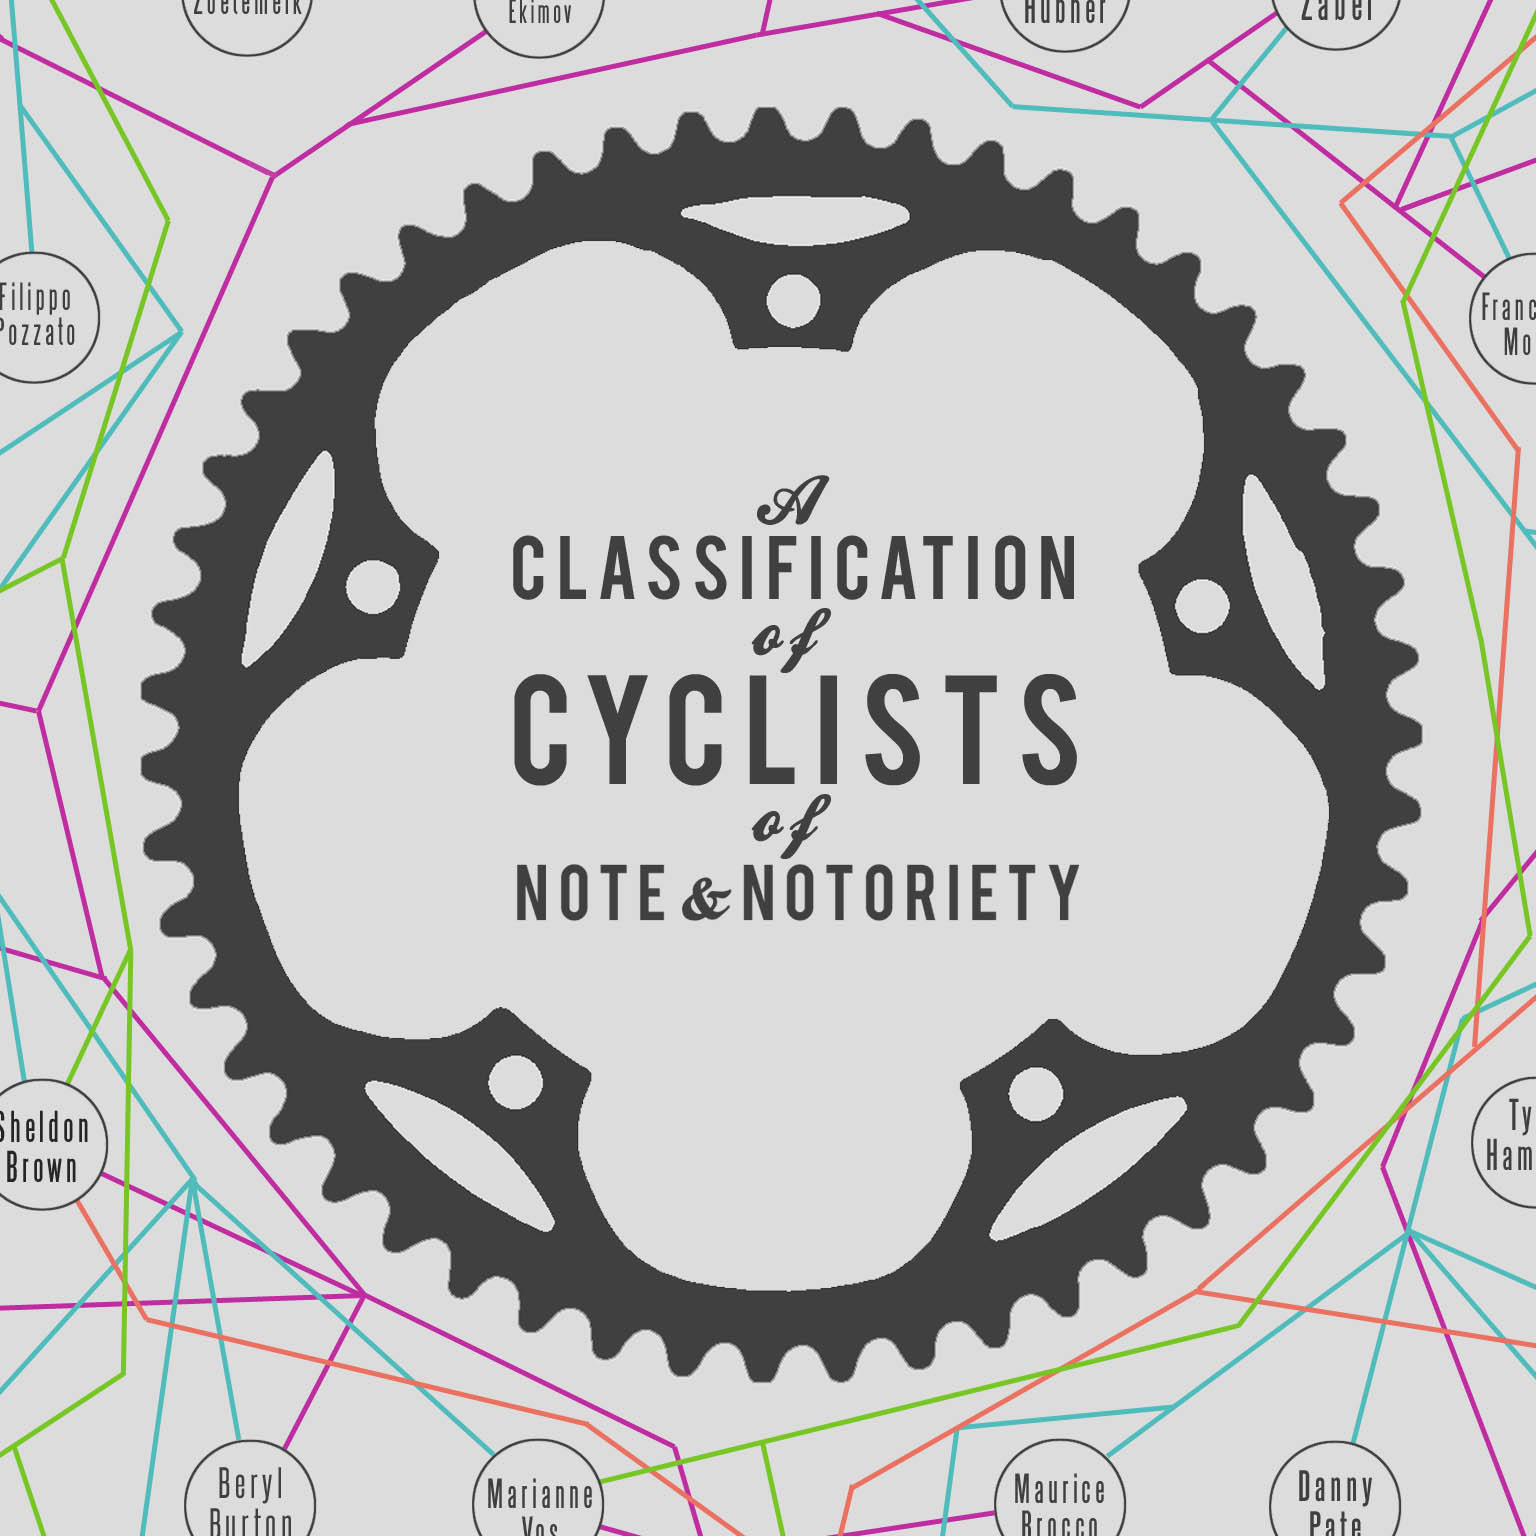 Classification of Cyclists of Note & Notoriety